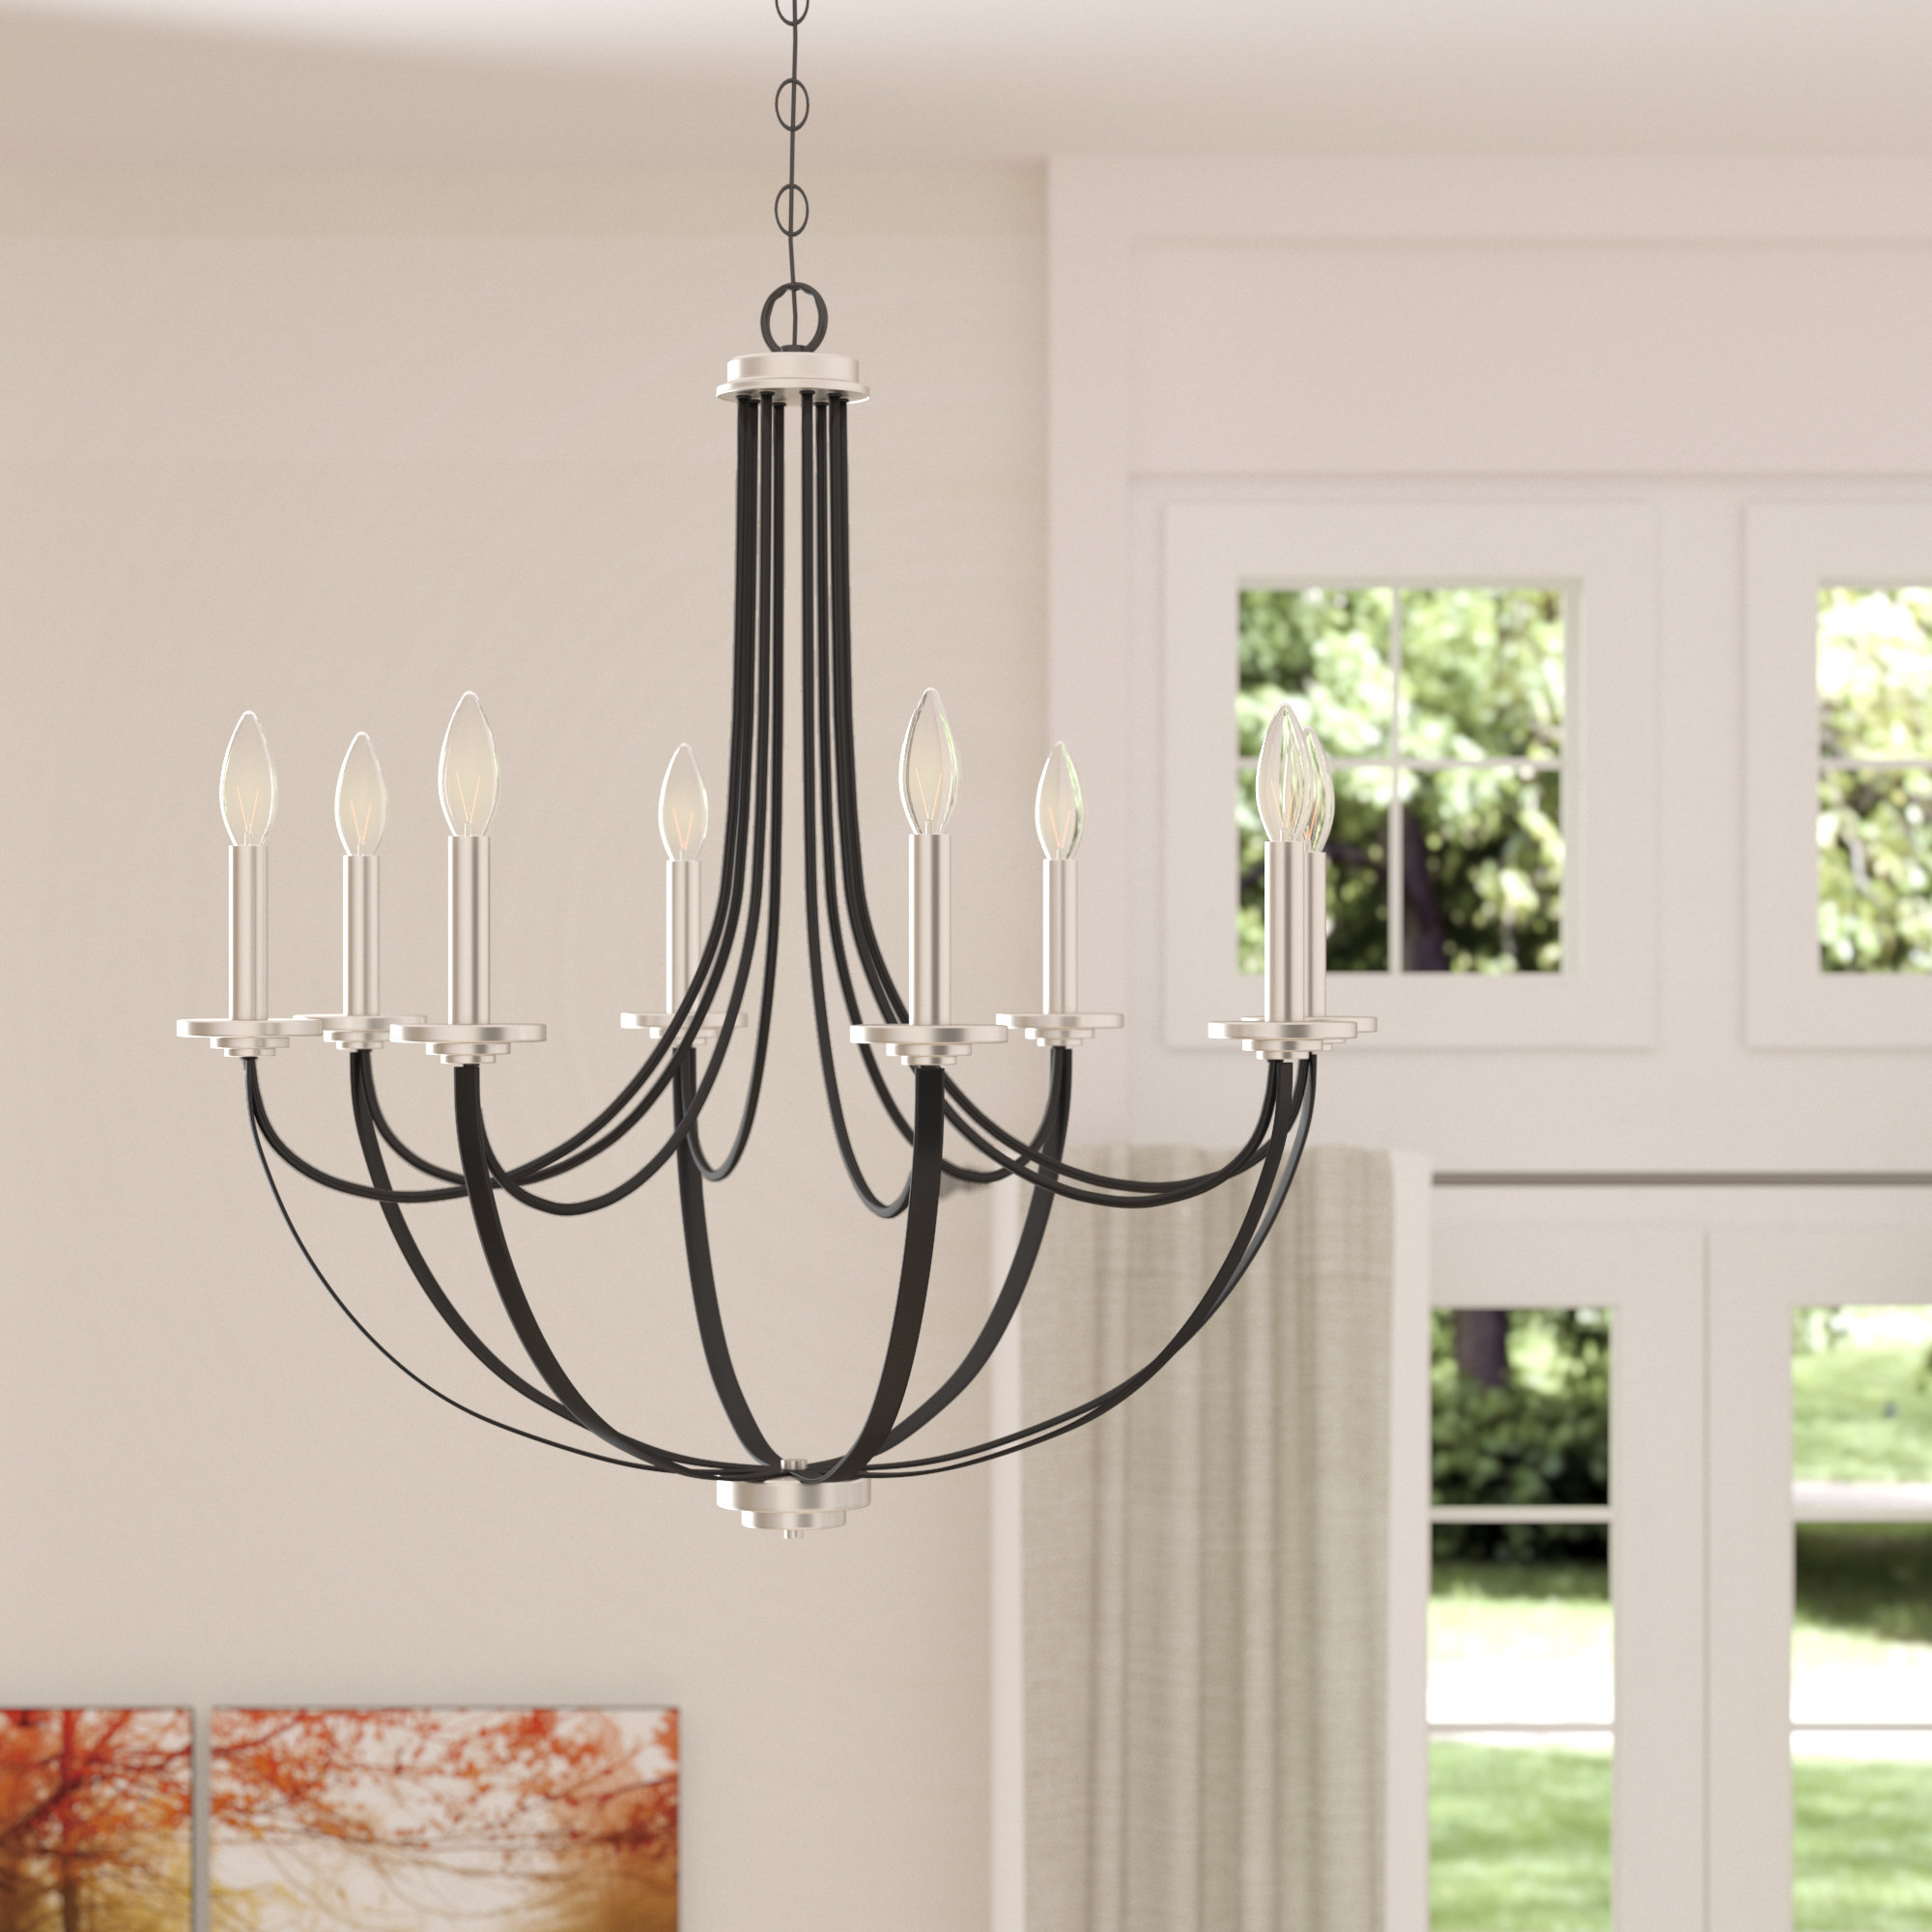 Siavash Mystic Black 8 Light Candle Style Chandelier Regarding Most Popular Shaylee 8 Light Candle Style Chandeliers (View 17 of 20)